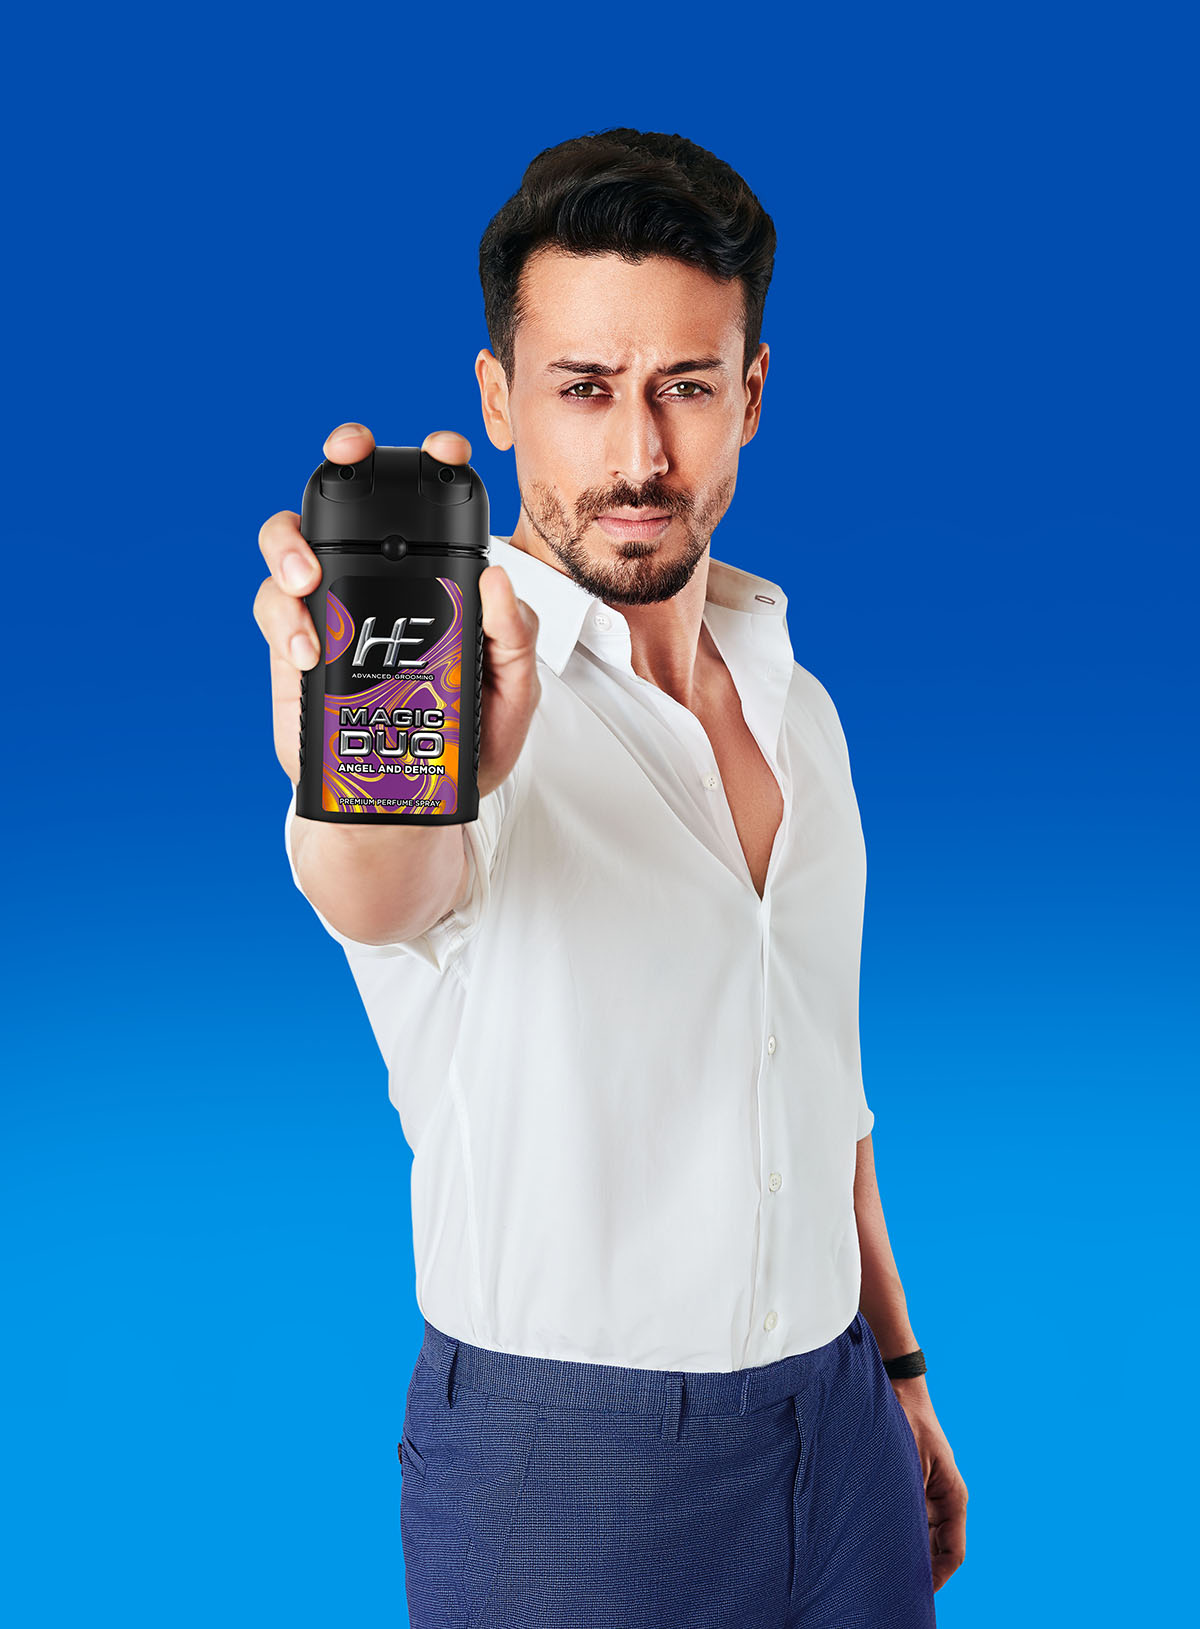 Bollywood Action Star Tiger Shroff adds 3-Ka-Punch to Emami's HE Magic Duo